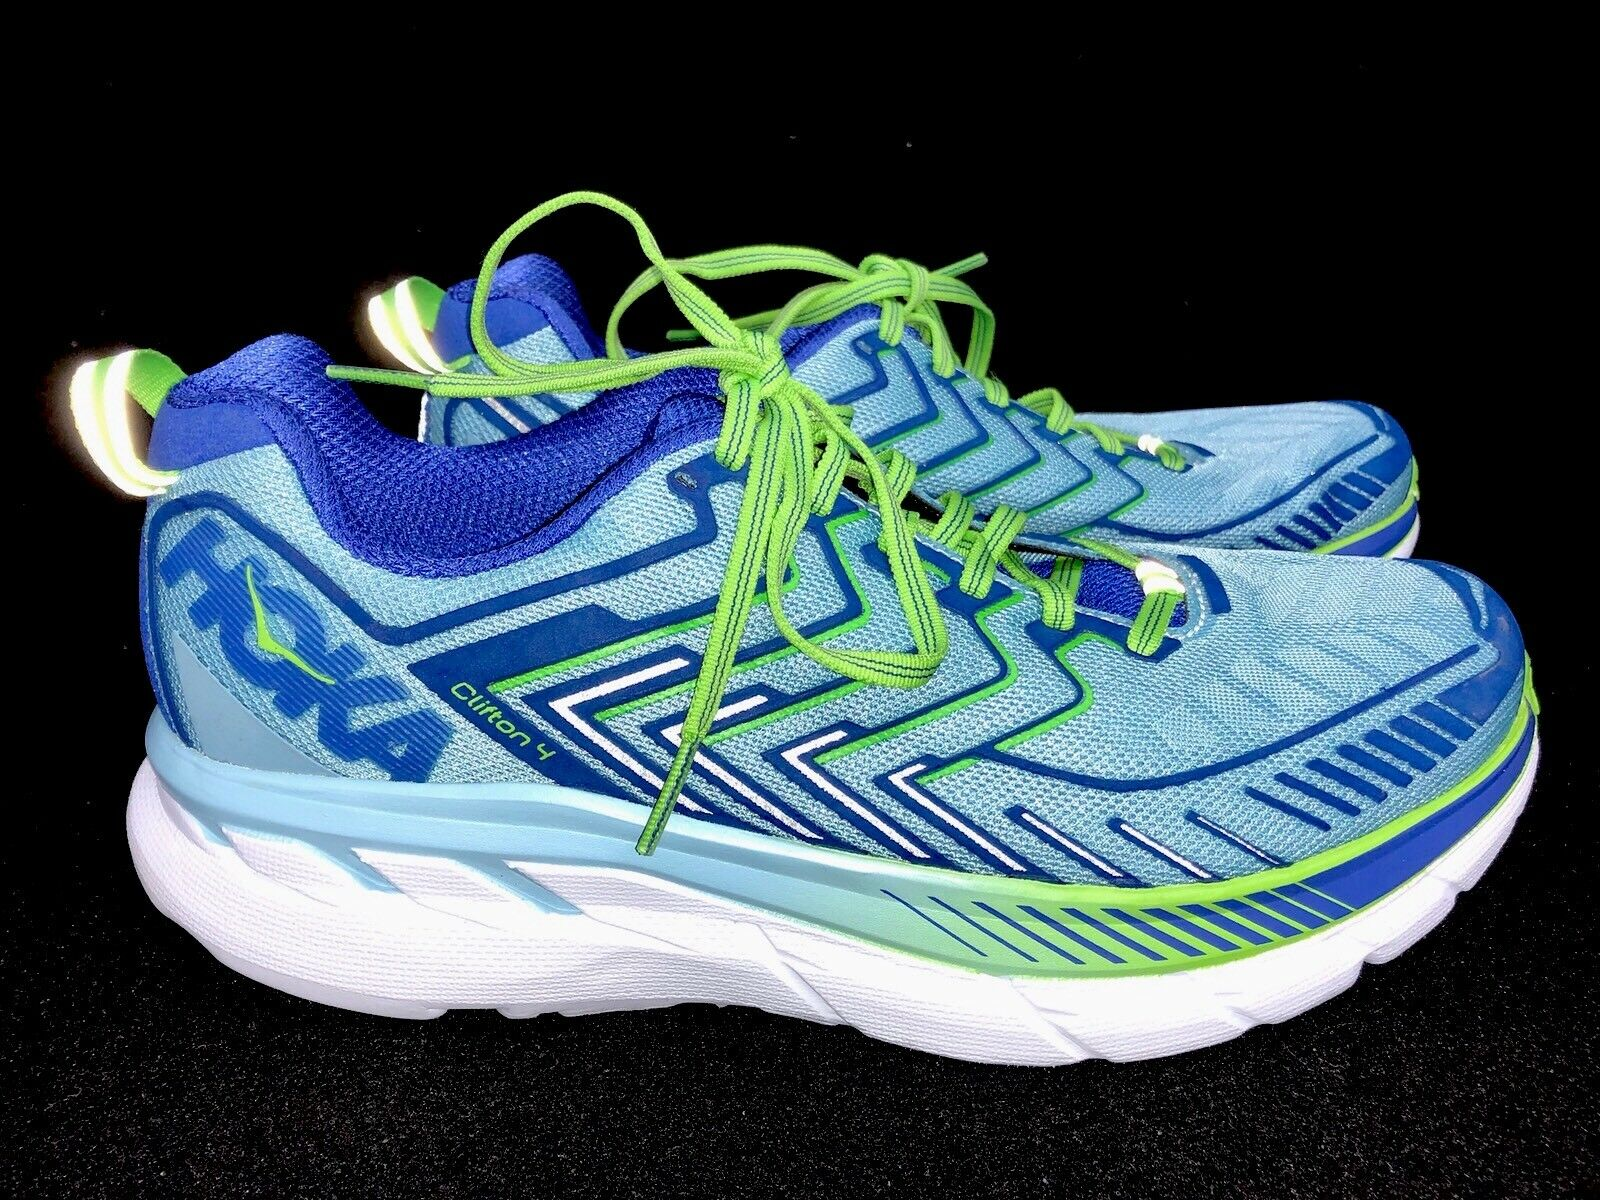 Hoka One One Clifton Clifton Clifton 4 Sky bluee Surf the Web Running shoes Tennis Womens 7.5 8.5 6845c4